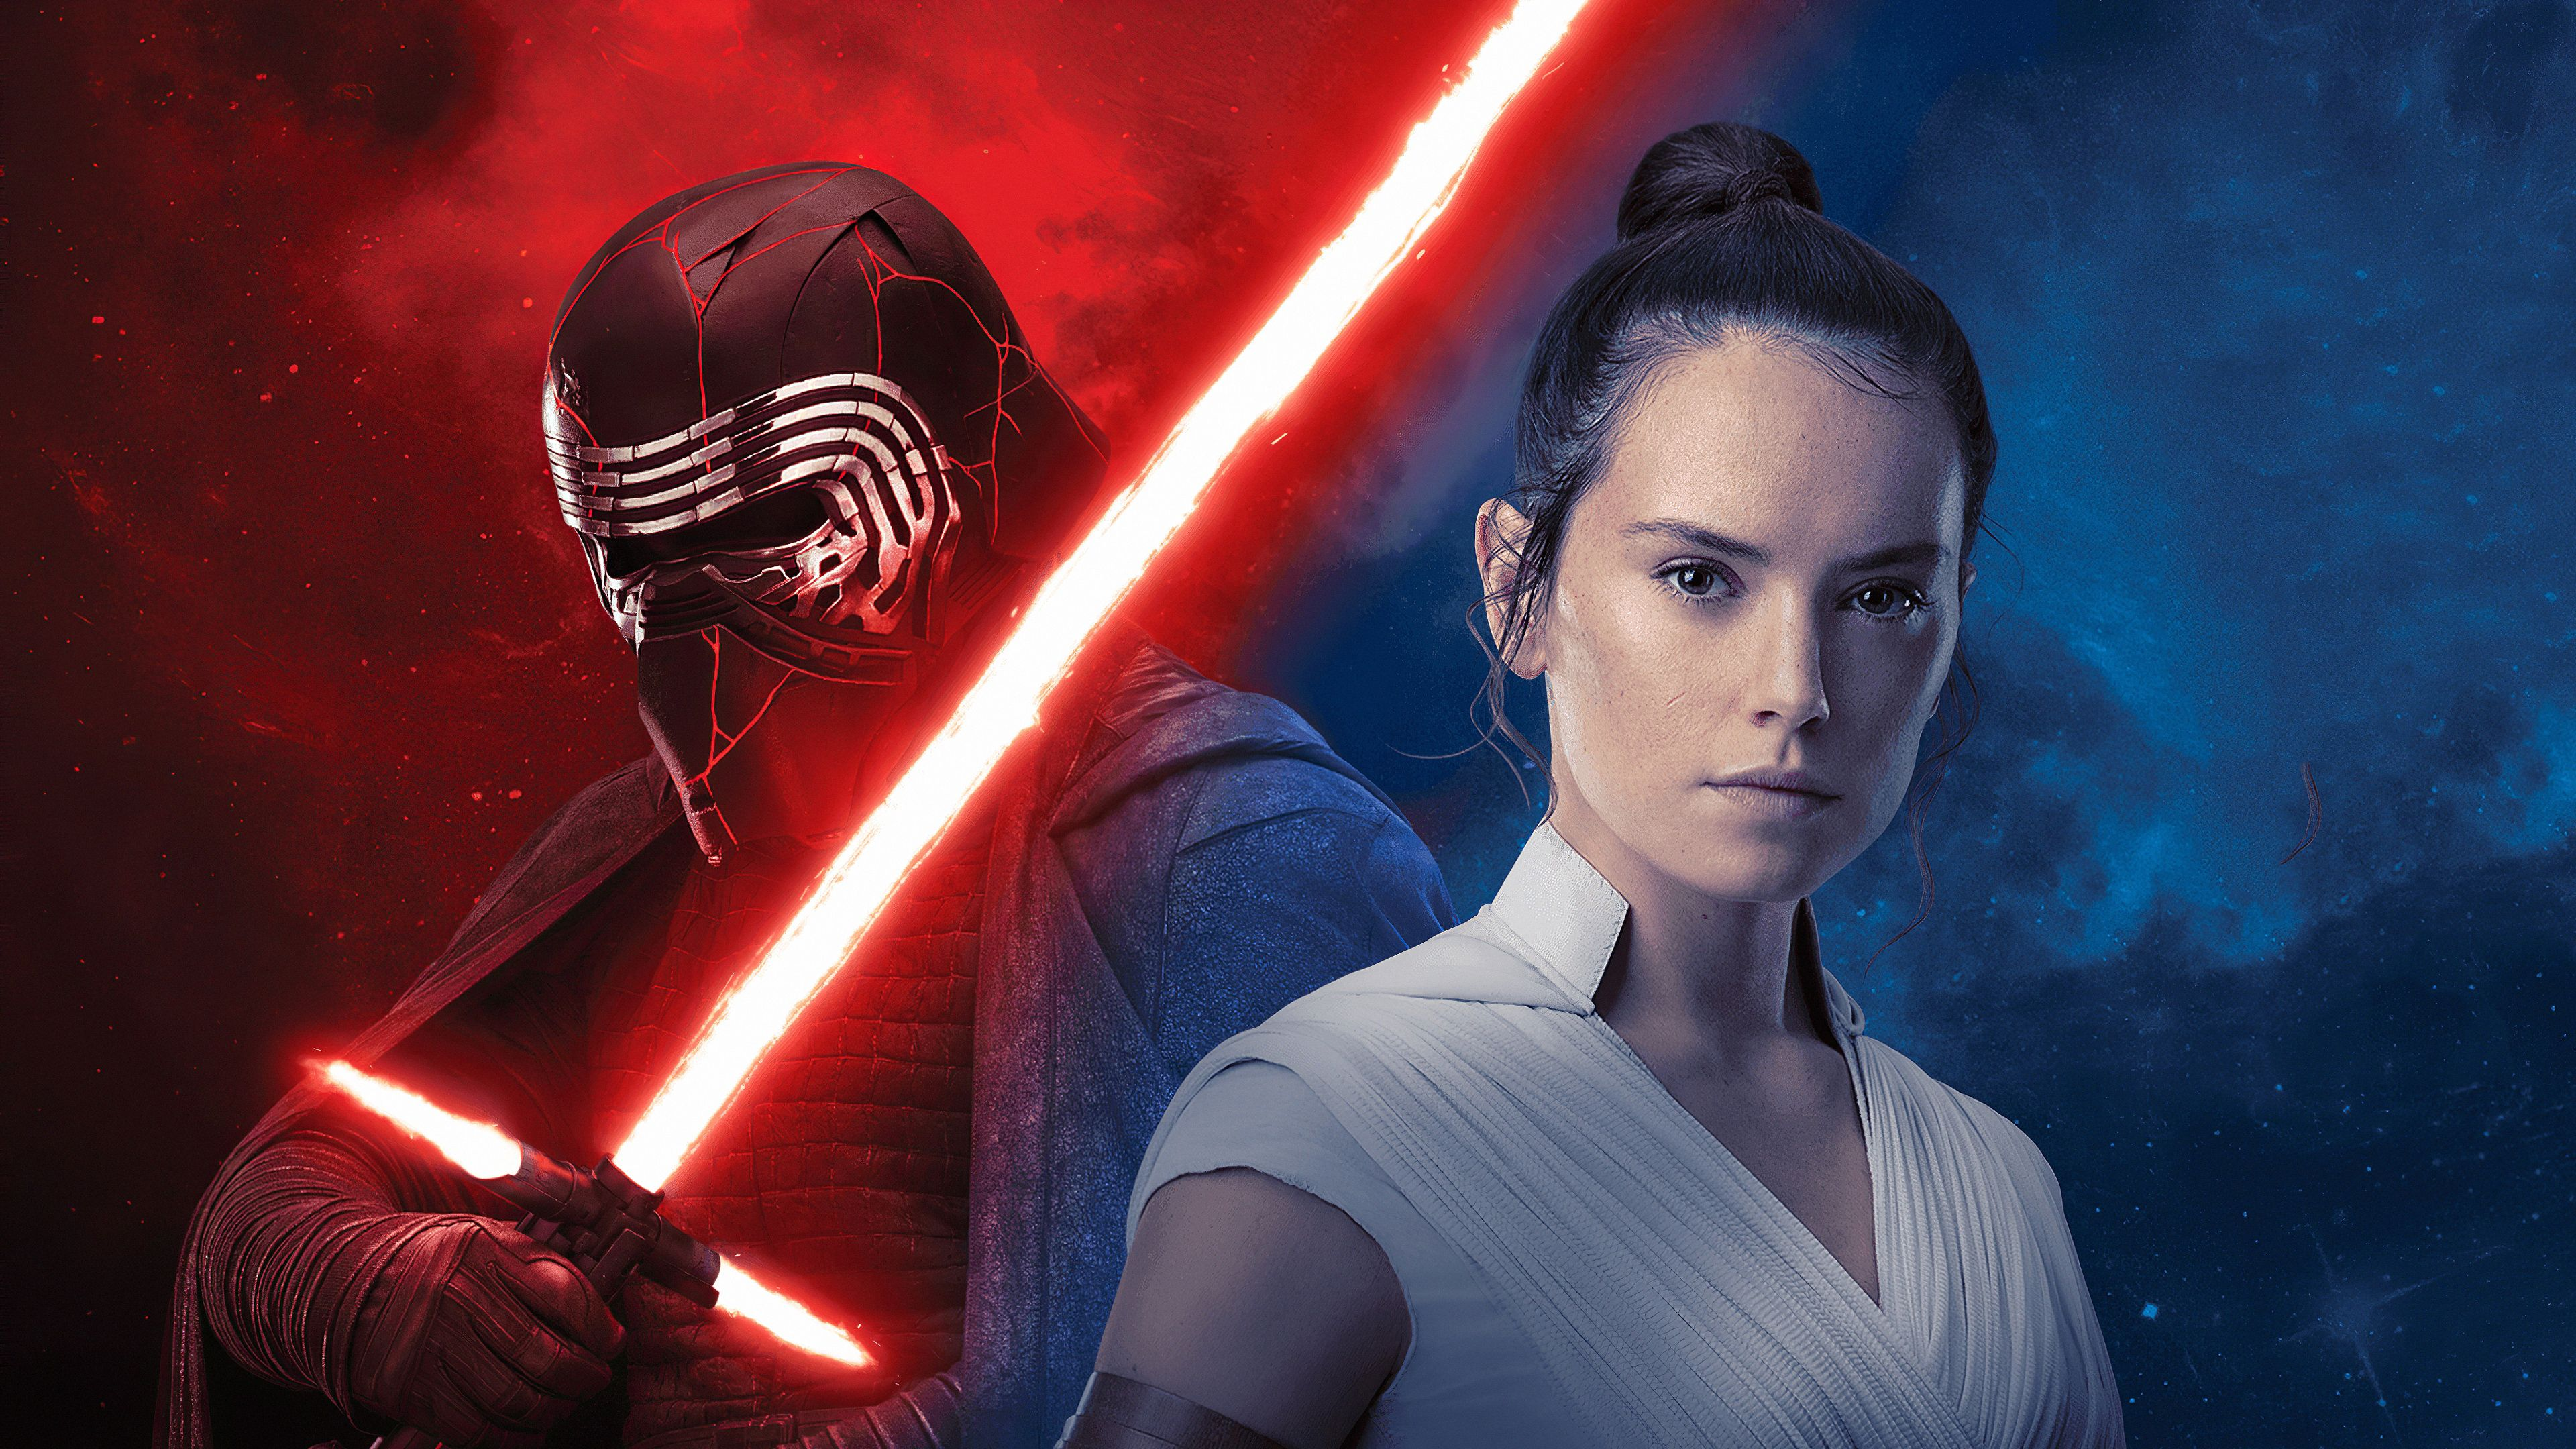 Star Wars The Rise Of Skywalker Star Wars The Rise Of Skywalker Wallpaper Hd 4k Star Wars The Ris Star Wars Movies Ranked Star Wars Movie Star Wars Characters